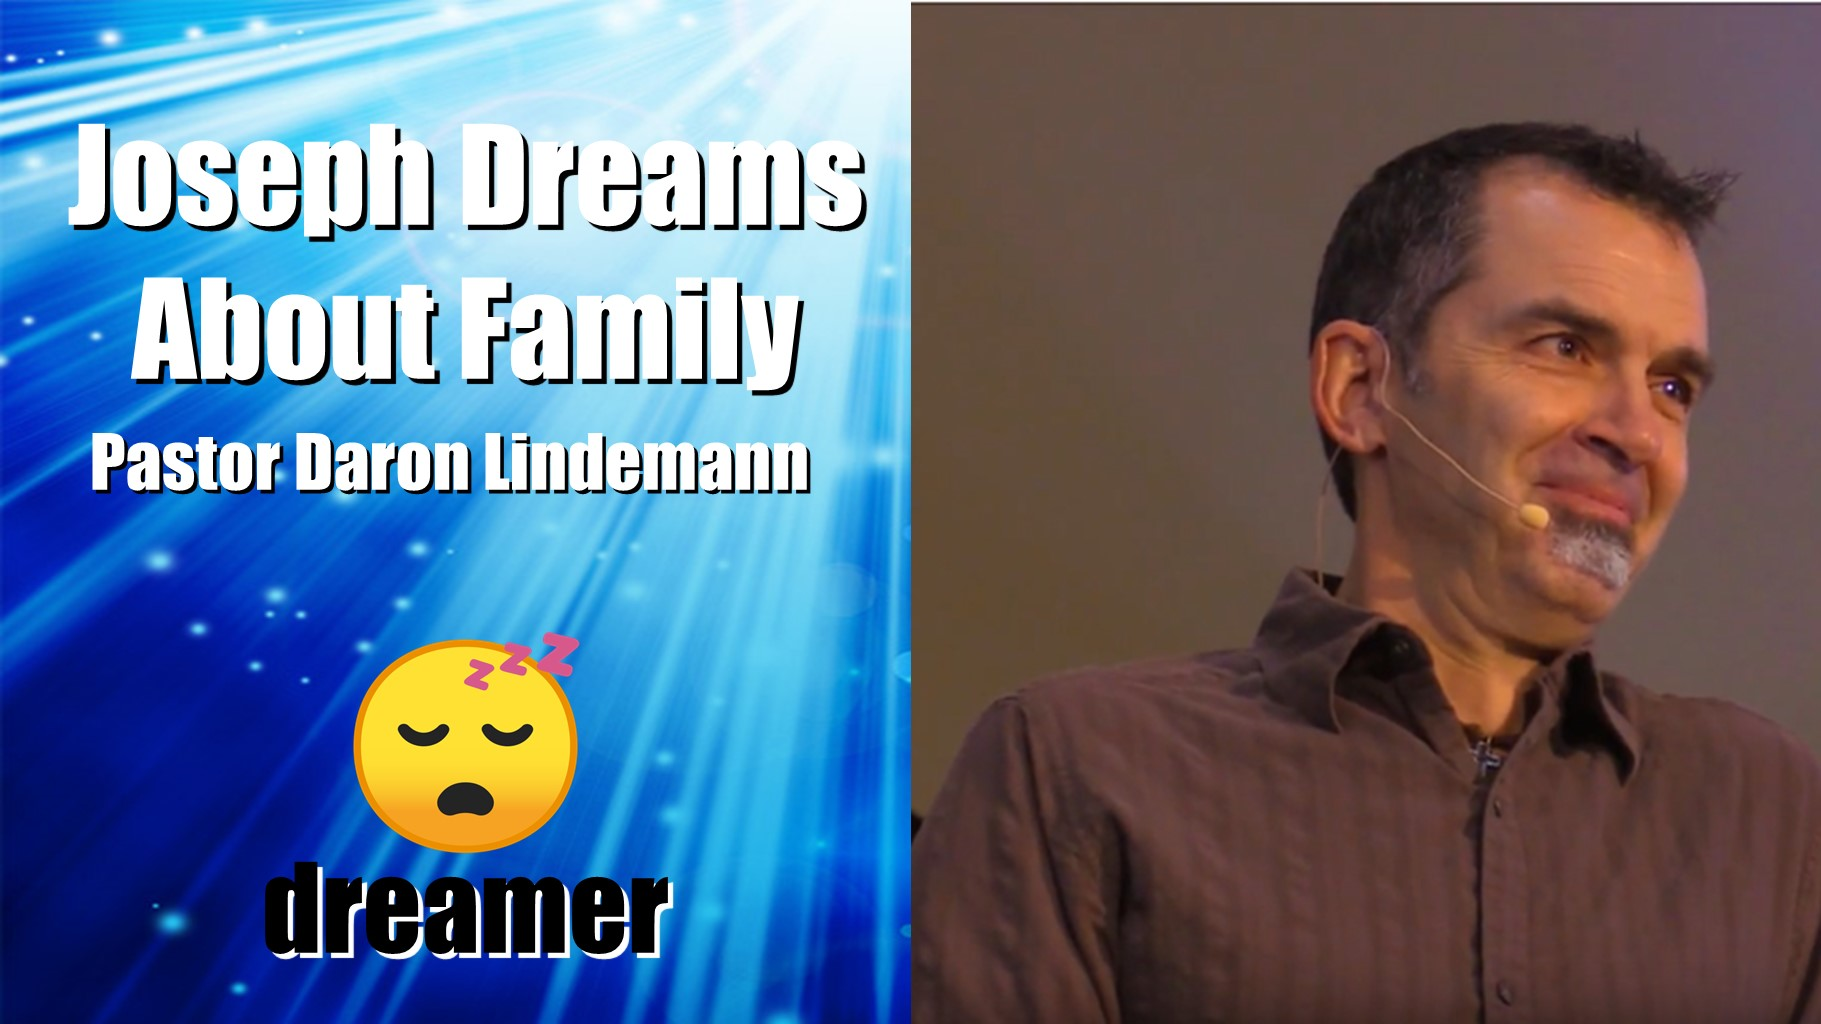 JOSEPH DREAMS A DIFFERENT FAMILY LIFE